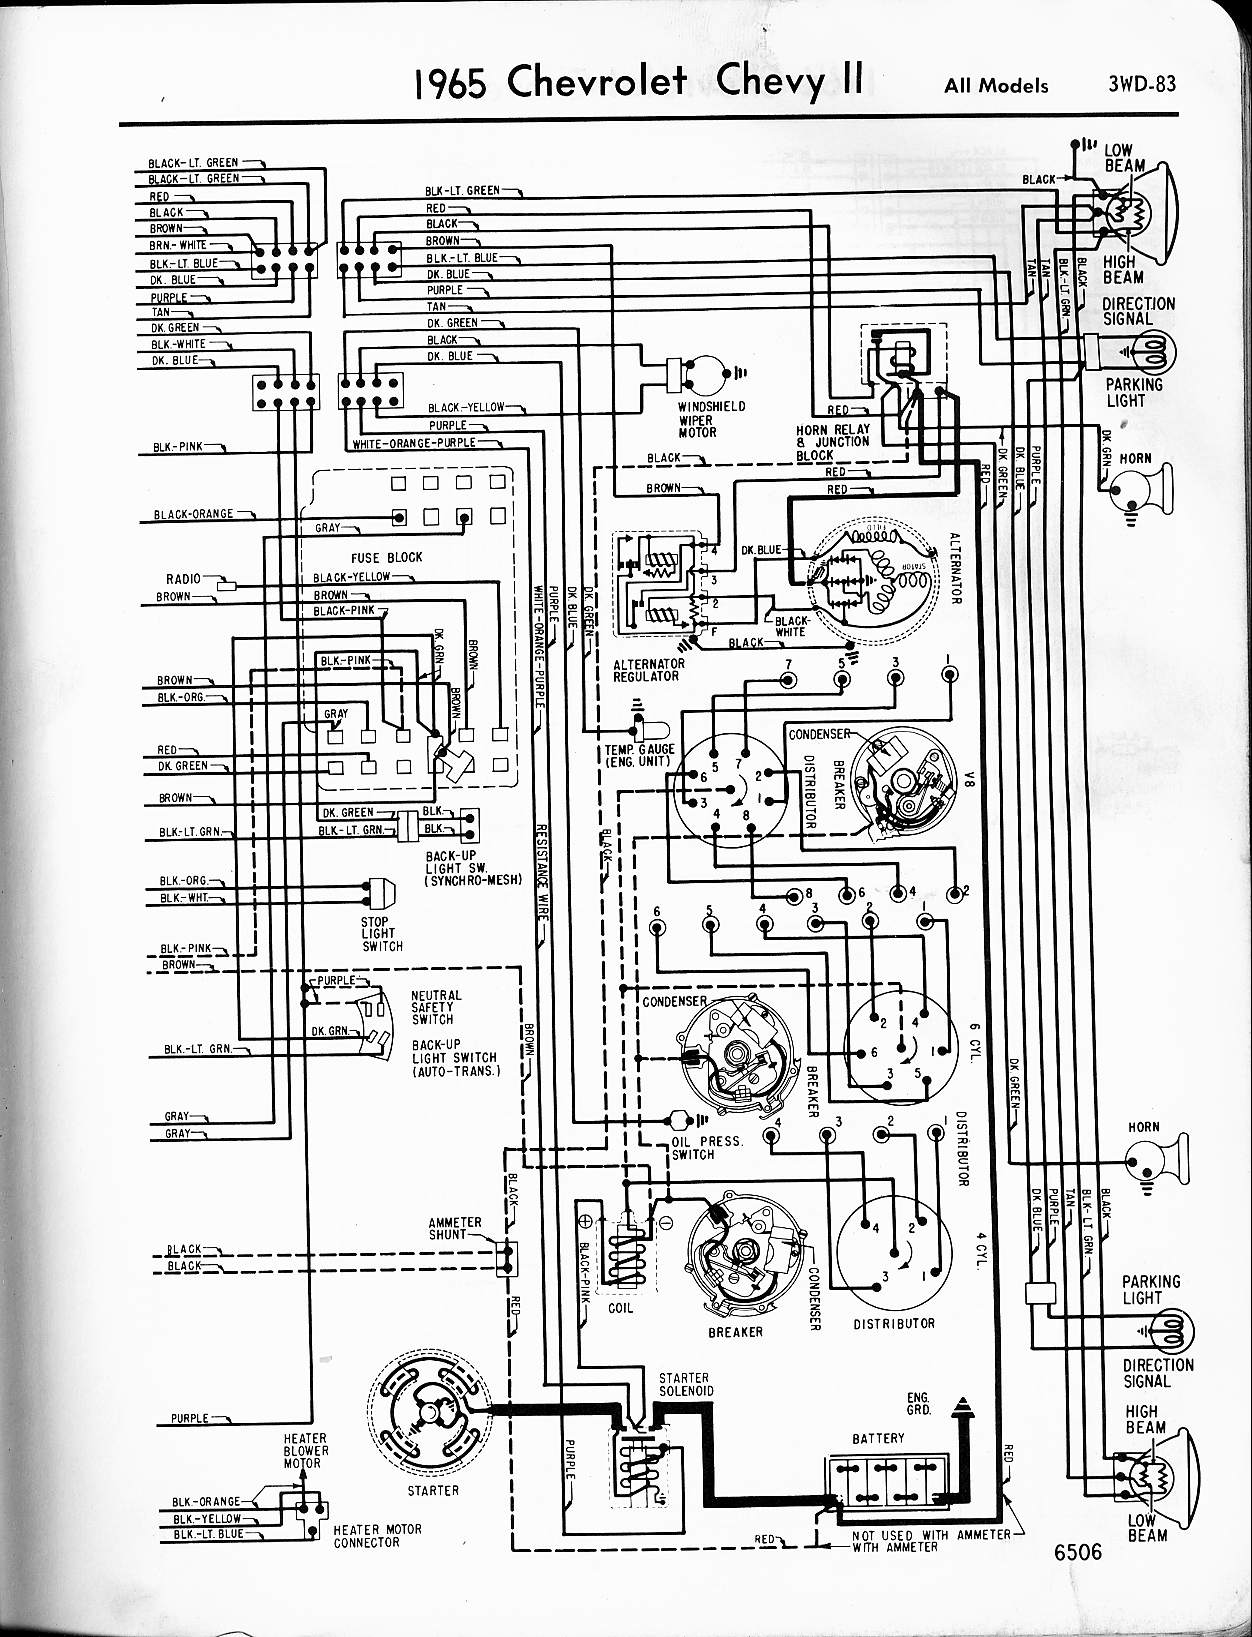 MWireChev65_3WD 083 chevy diagrams  at crackthecode.co